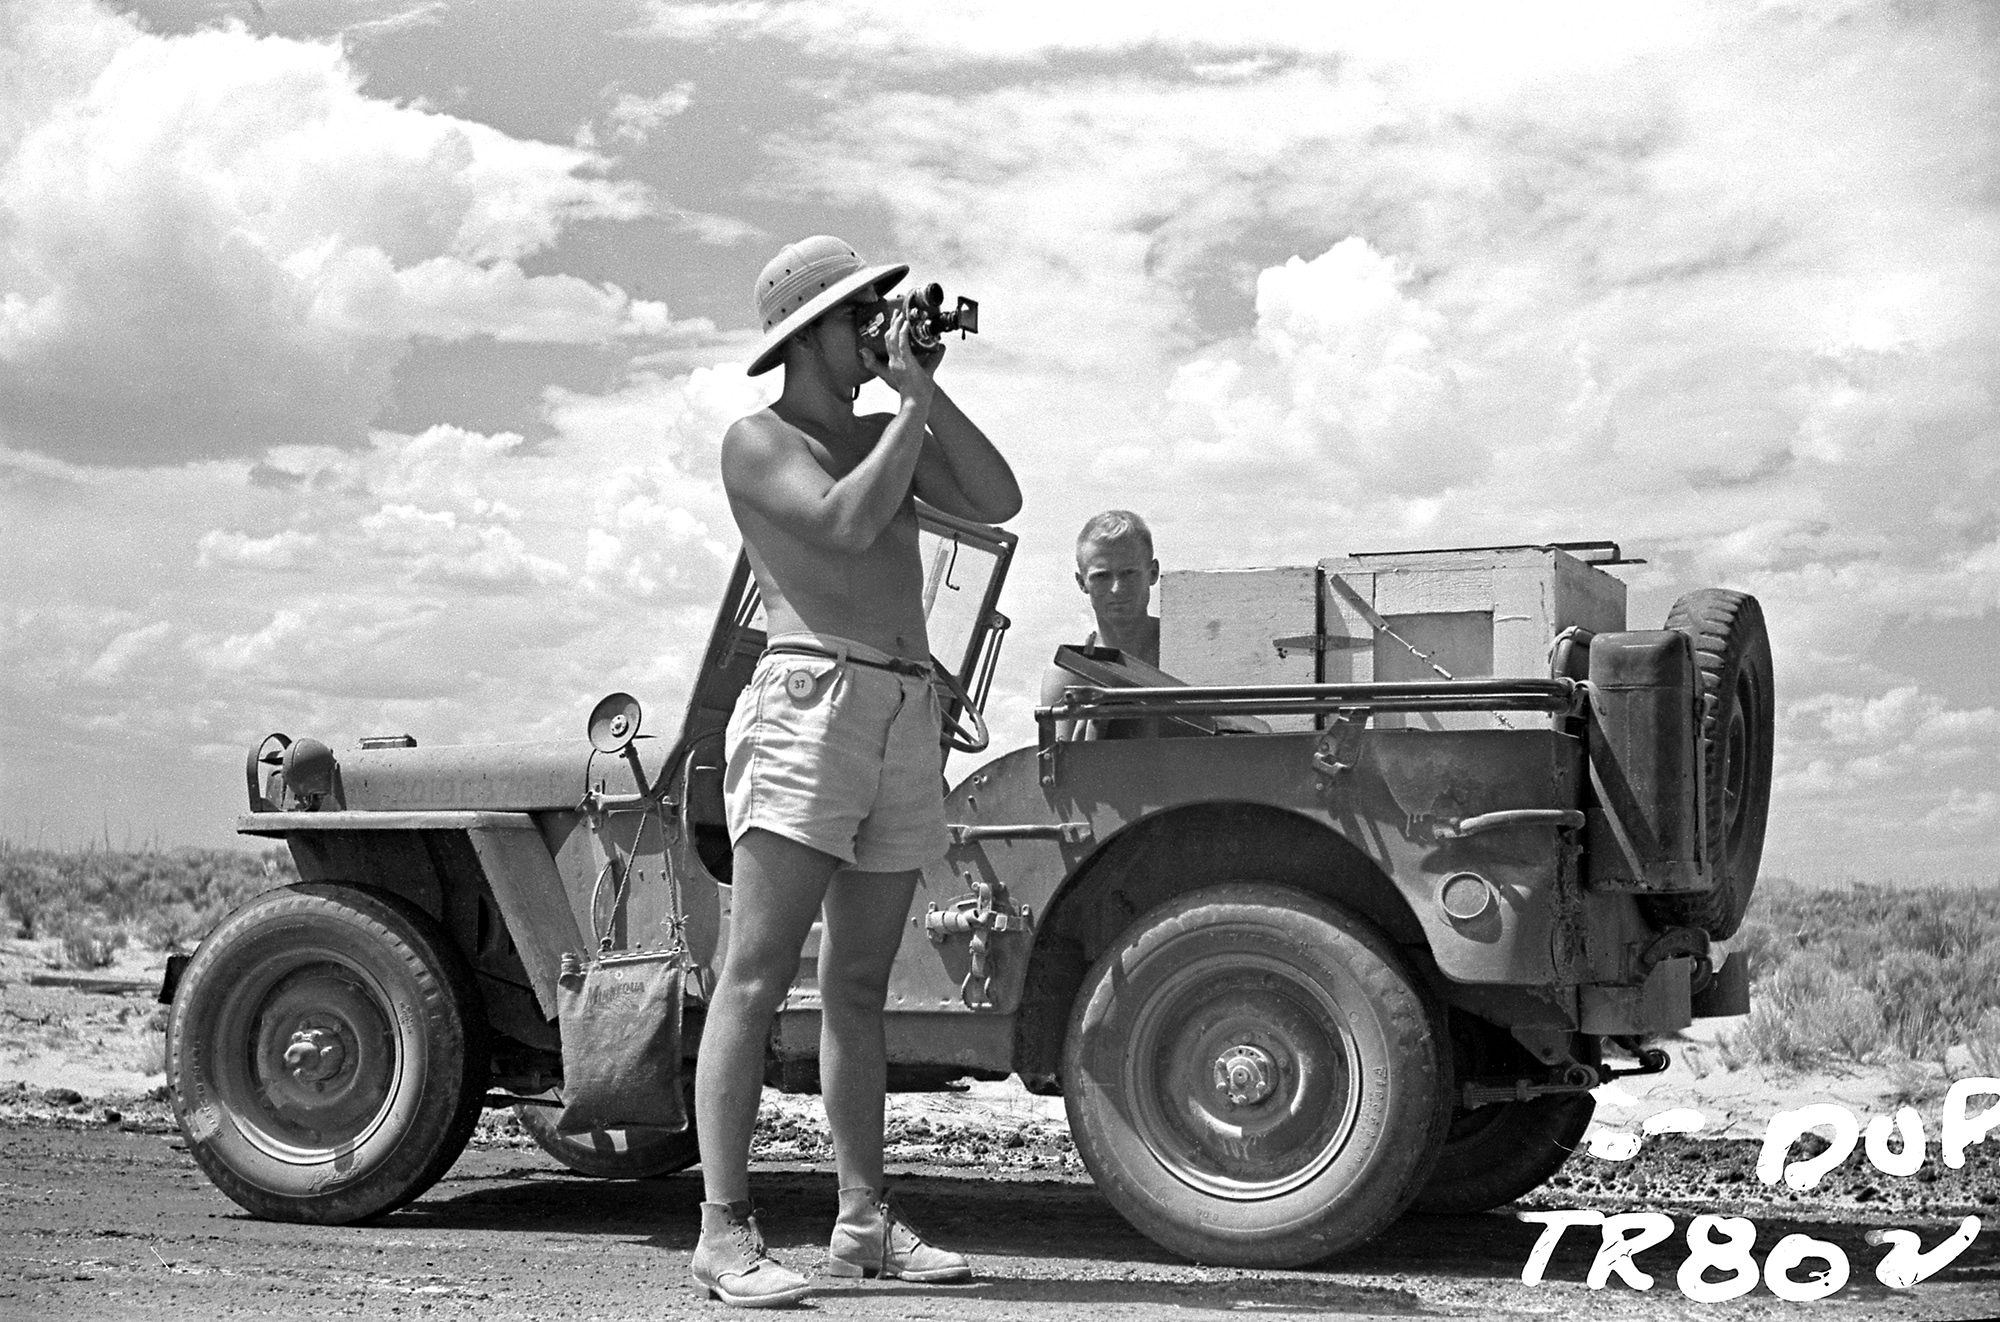 Ernest Wallis, taking pictures with contax camera equipped with telephoto lens